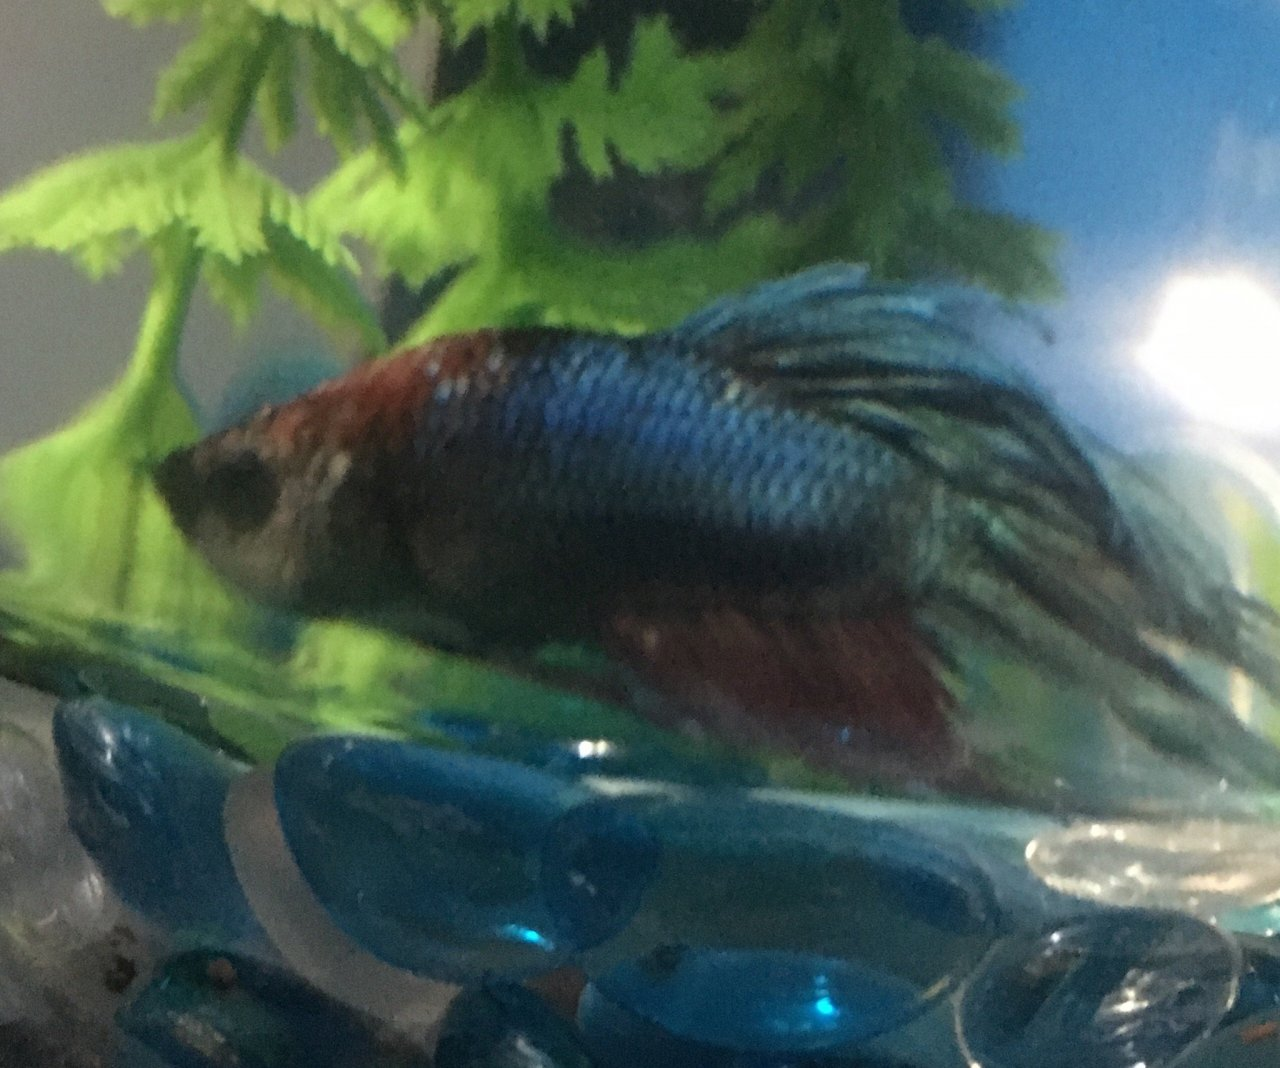 My Betta Fish Has Developed White Looking Scales Around His Face ...